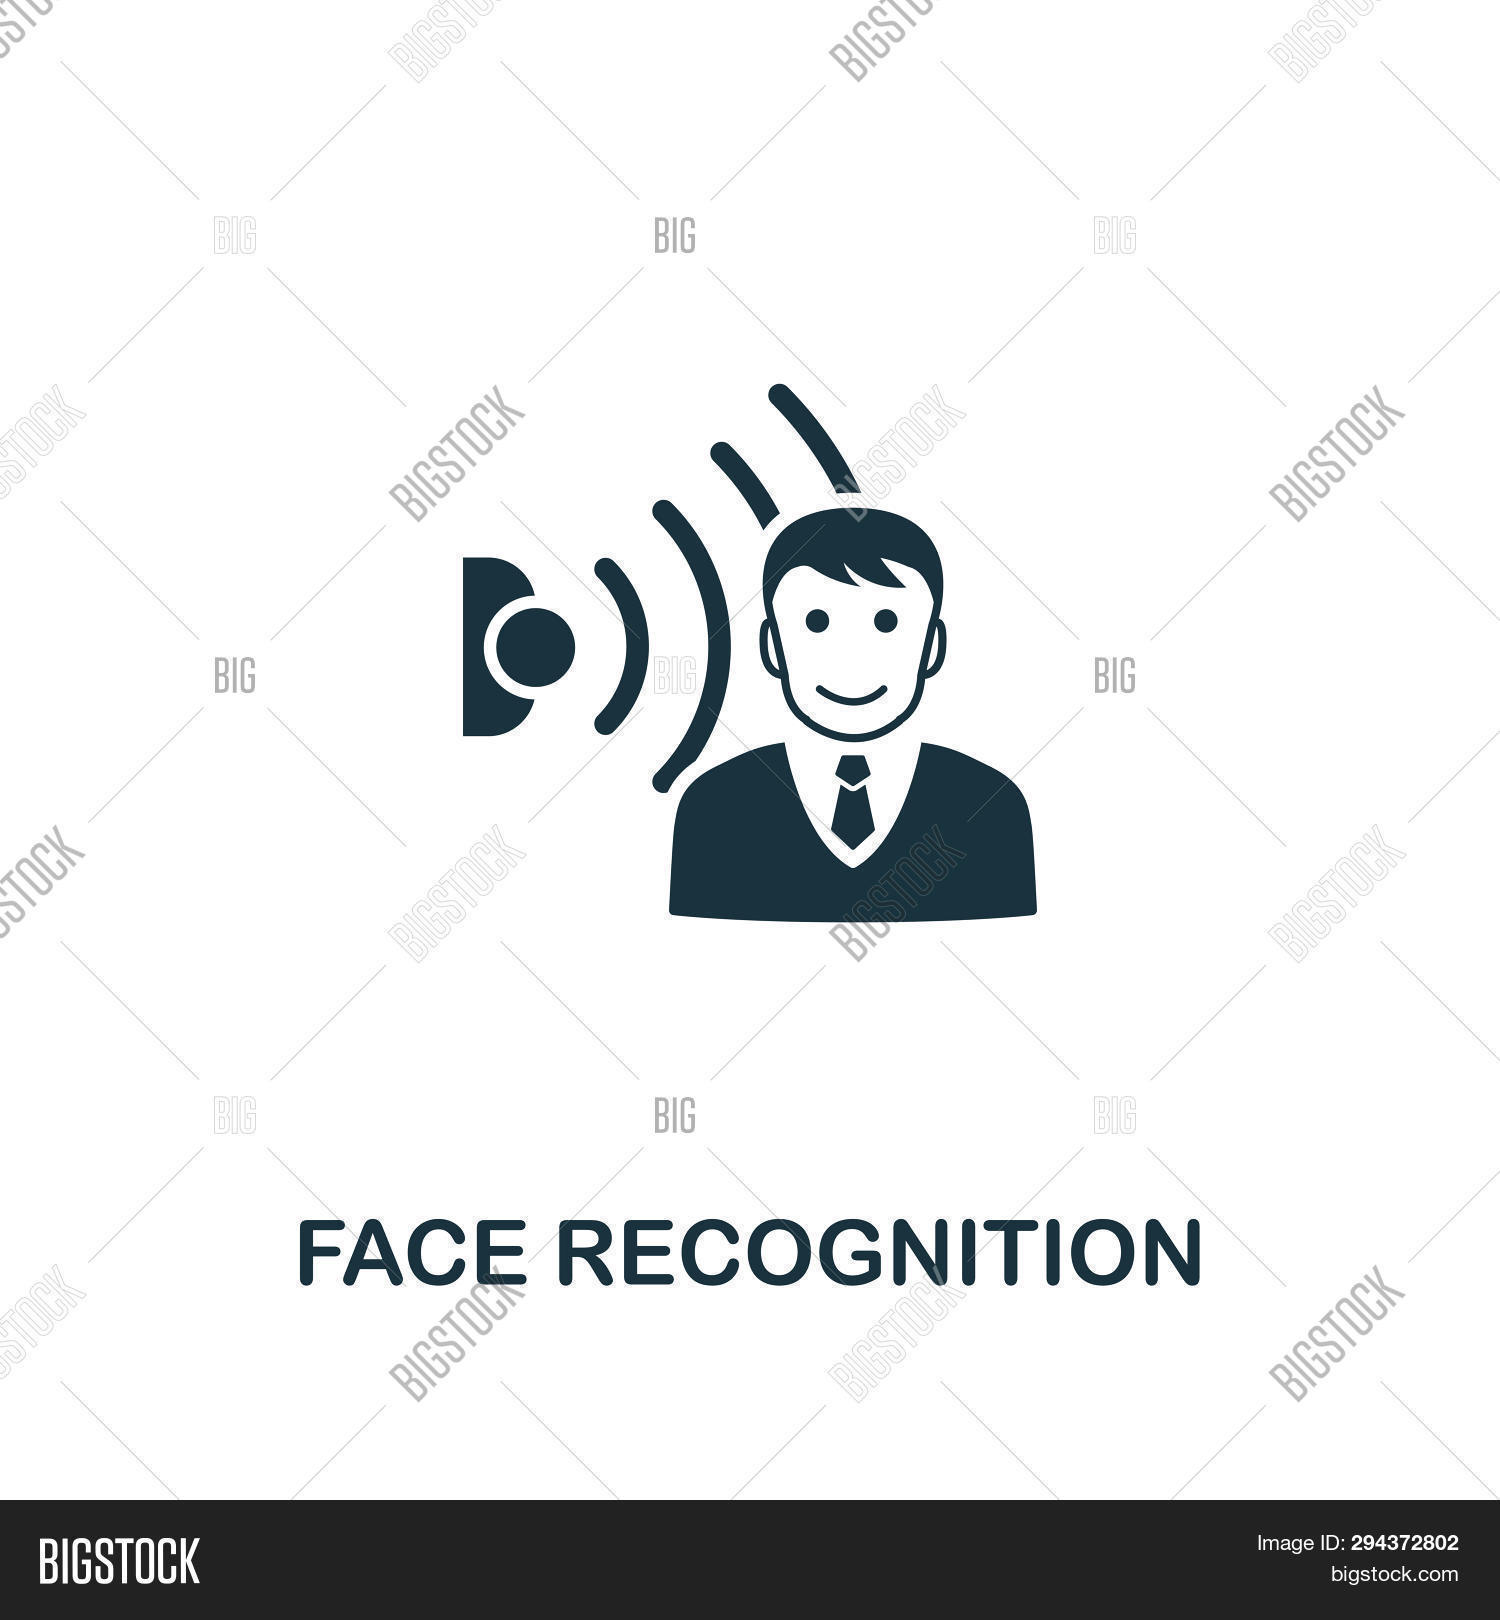 face recognition icon image